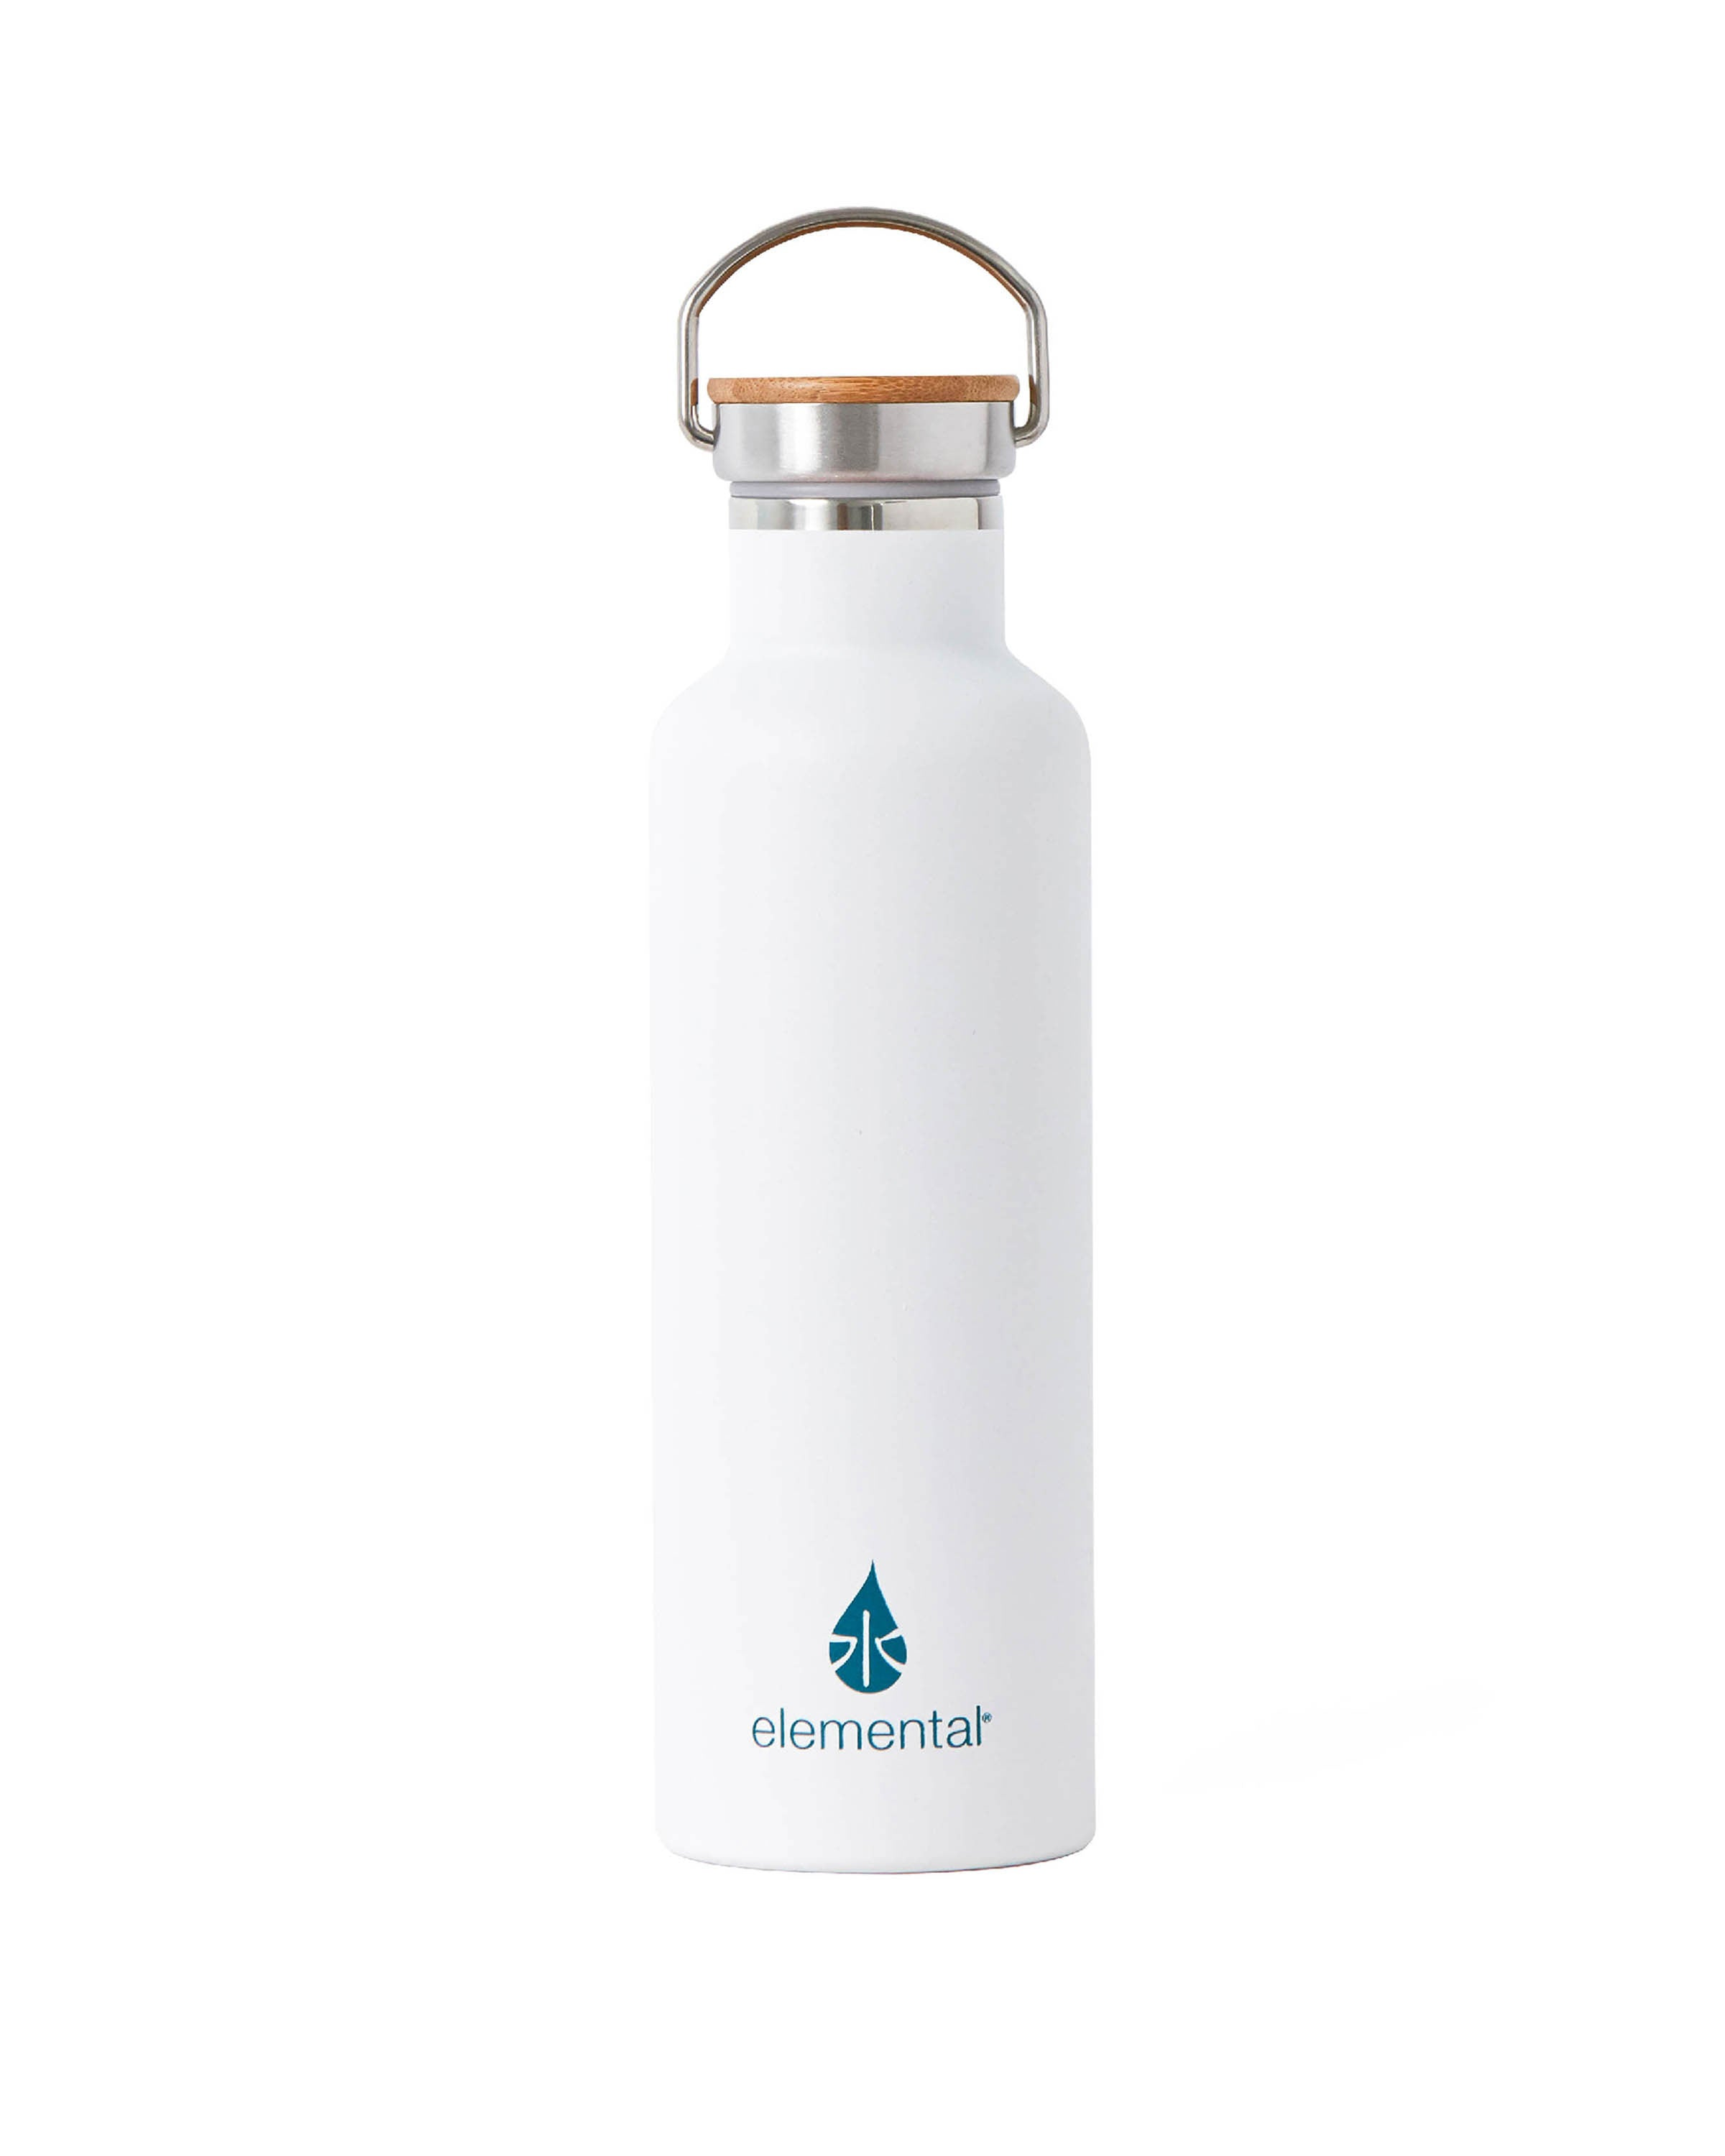 Elemental Stainless Steel Classic Water Bottle - 25oz Matte White - Elemental Gifts